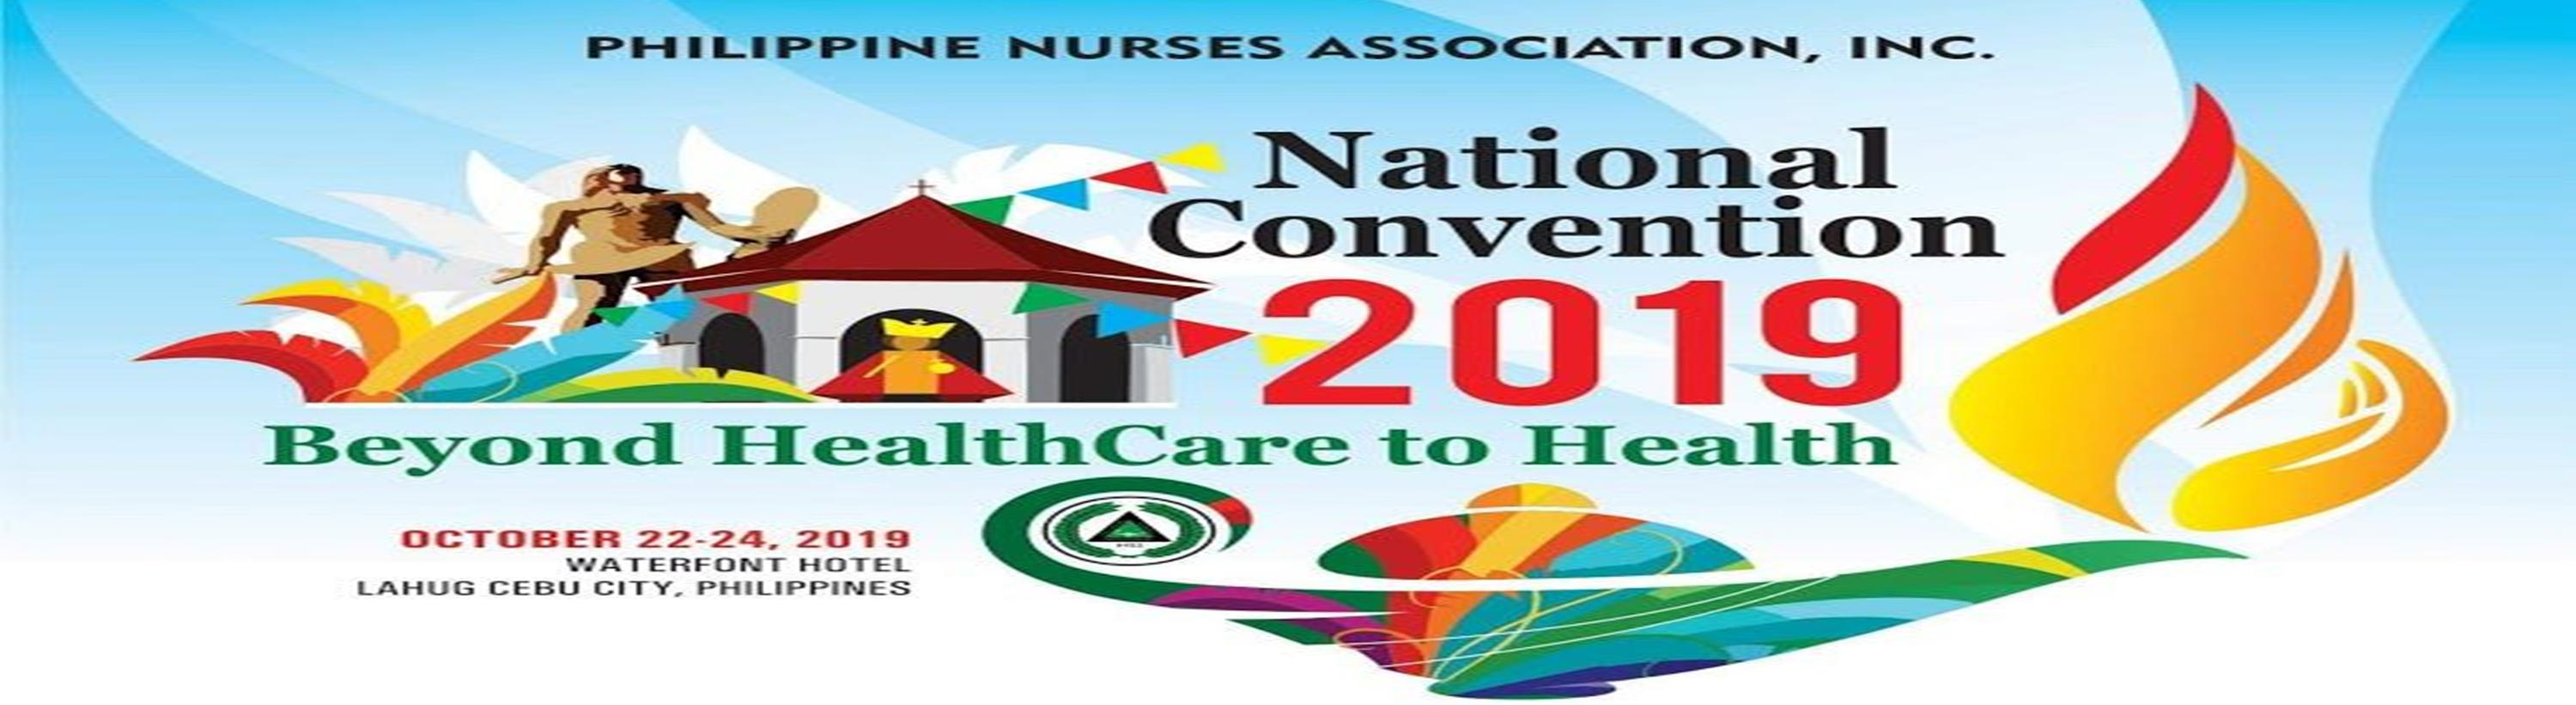 97th Foundation Anniversary, 62nd Nurses Week Celebration and National Annual Convention